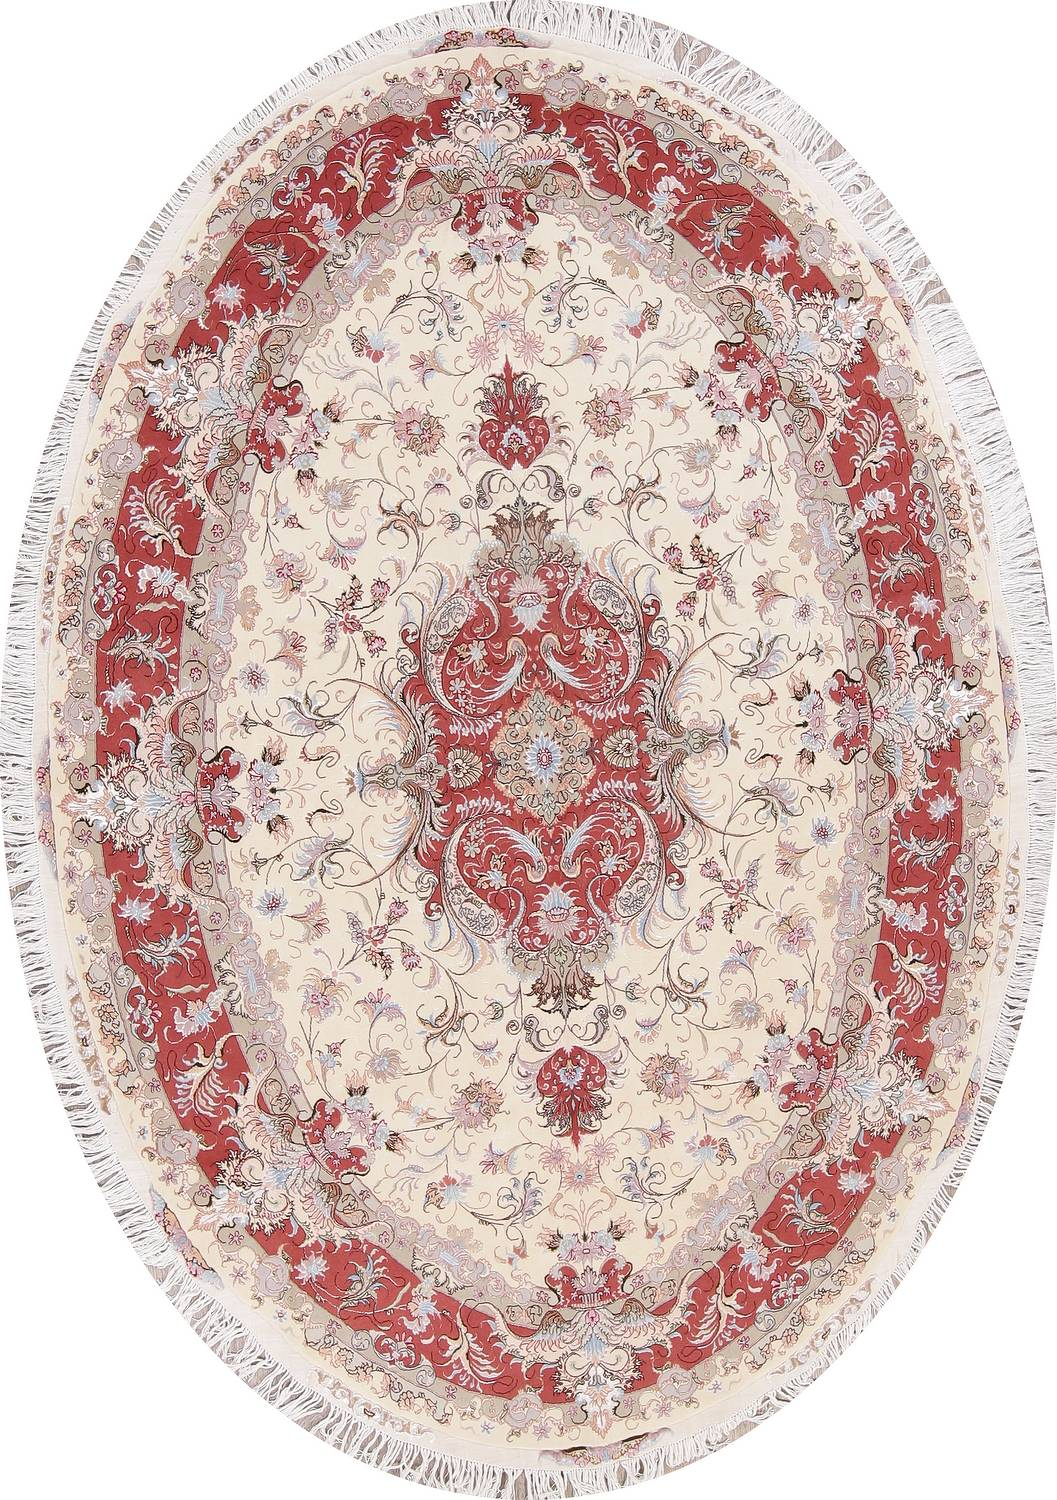 Image of: Ivory Floral Tabriz Persian Oval Area Rug 7×10